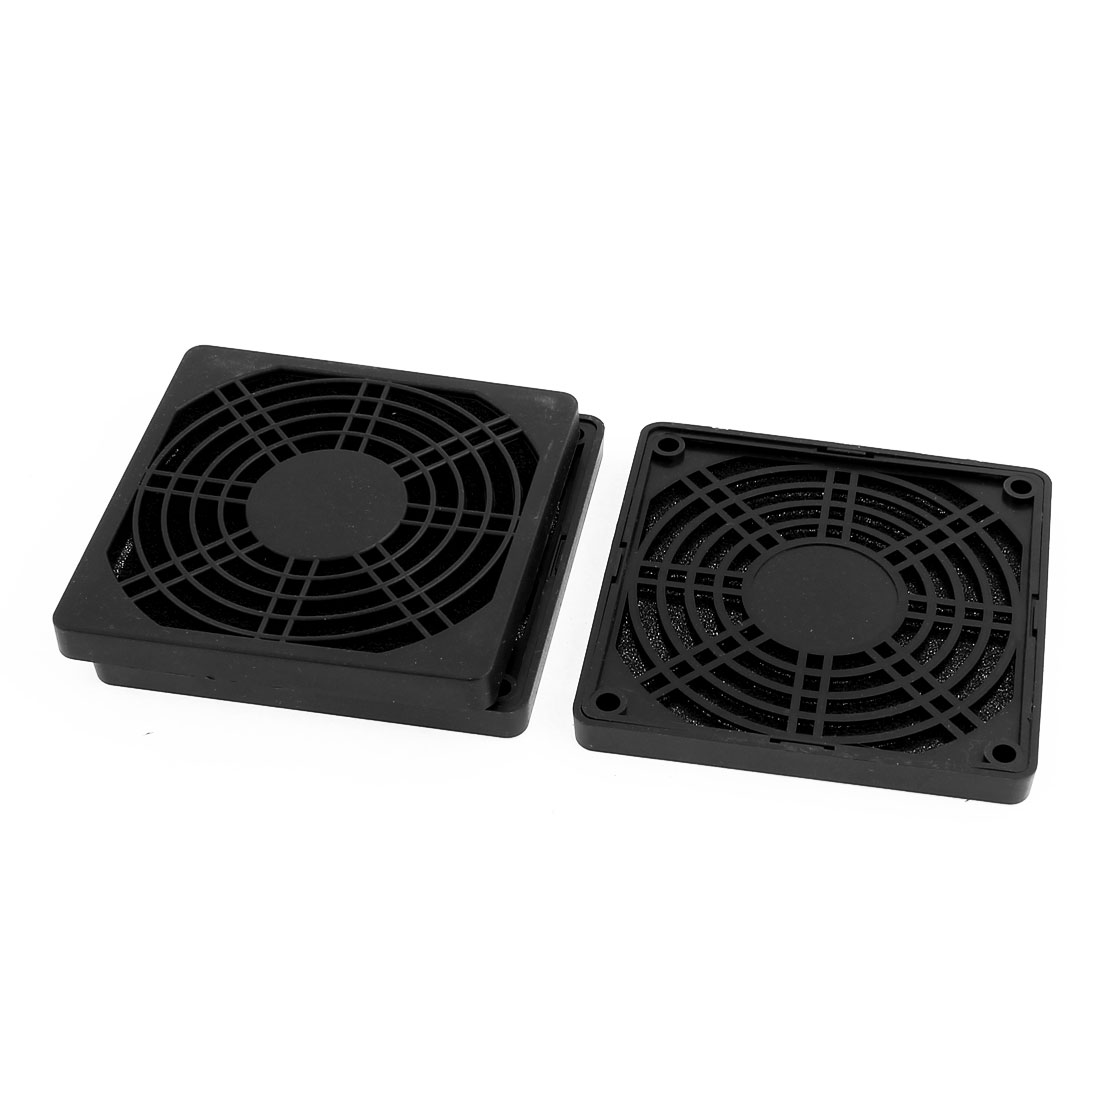 3pcs 97mm x 97mm Dustproof Case PC Computer Case Fan Dust Filter